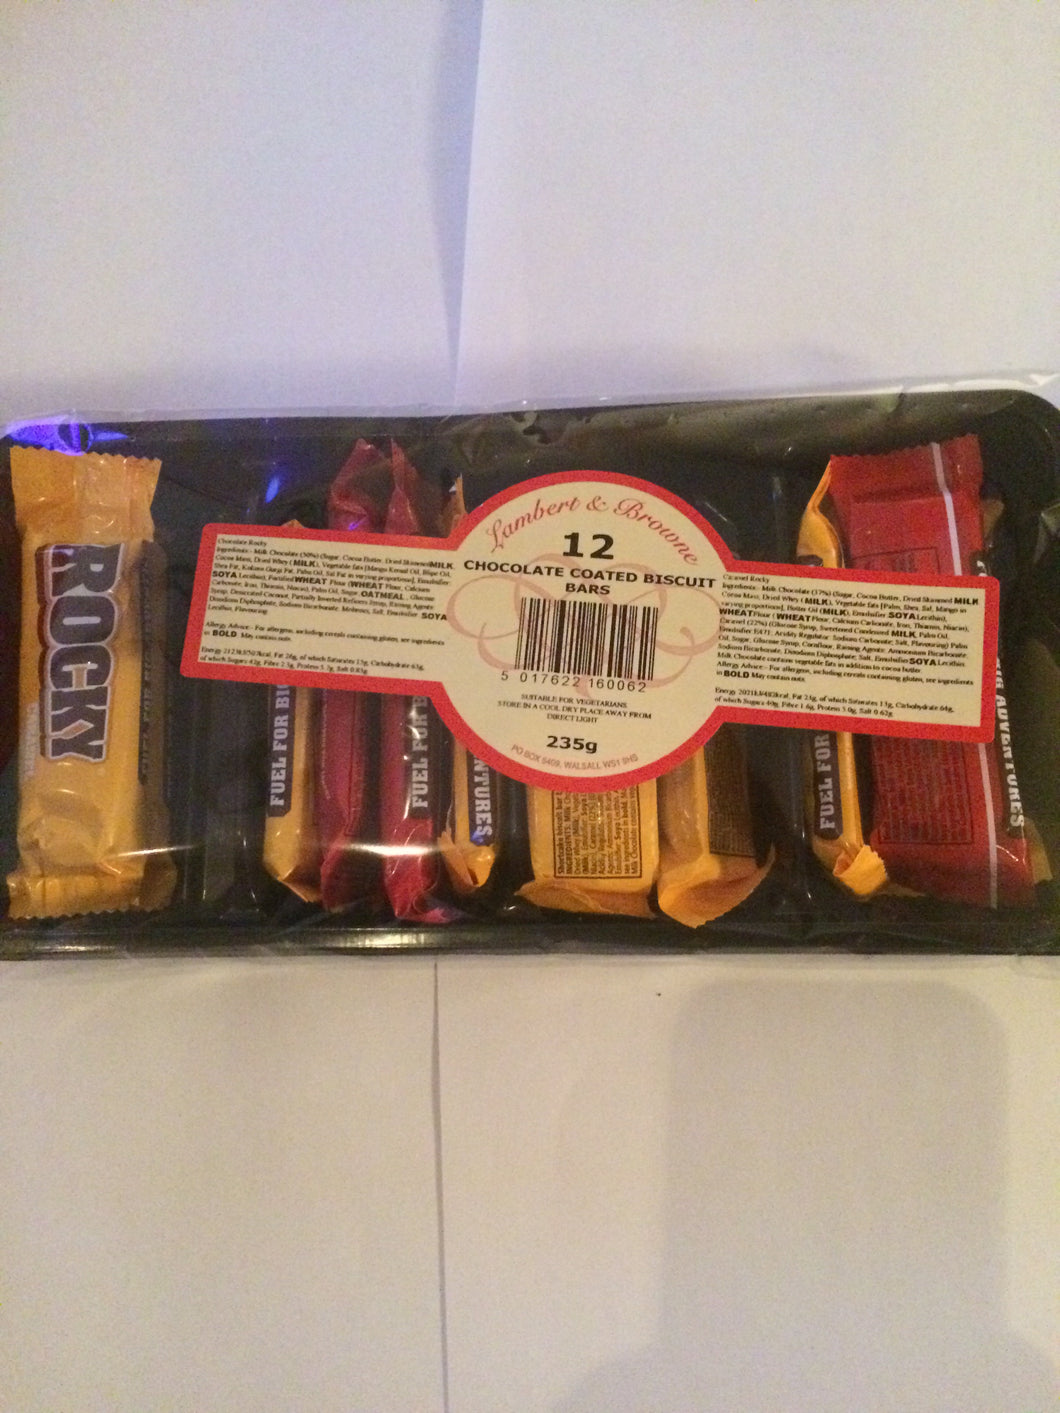 Rocky Chocolate and Caramel Biscuits 12 pack 235g